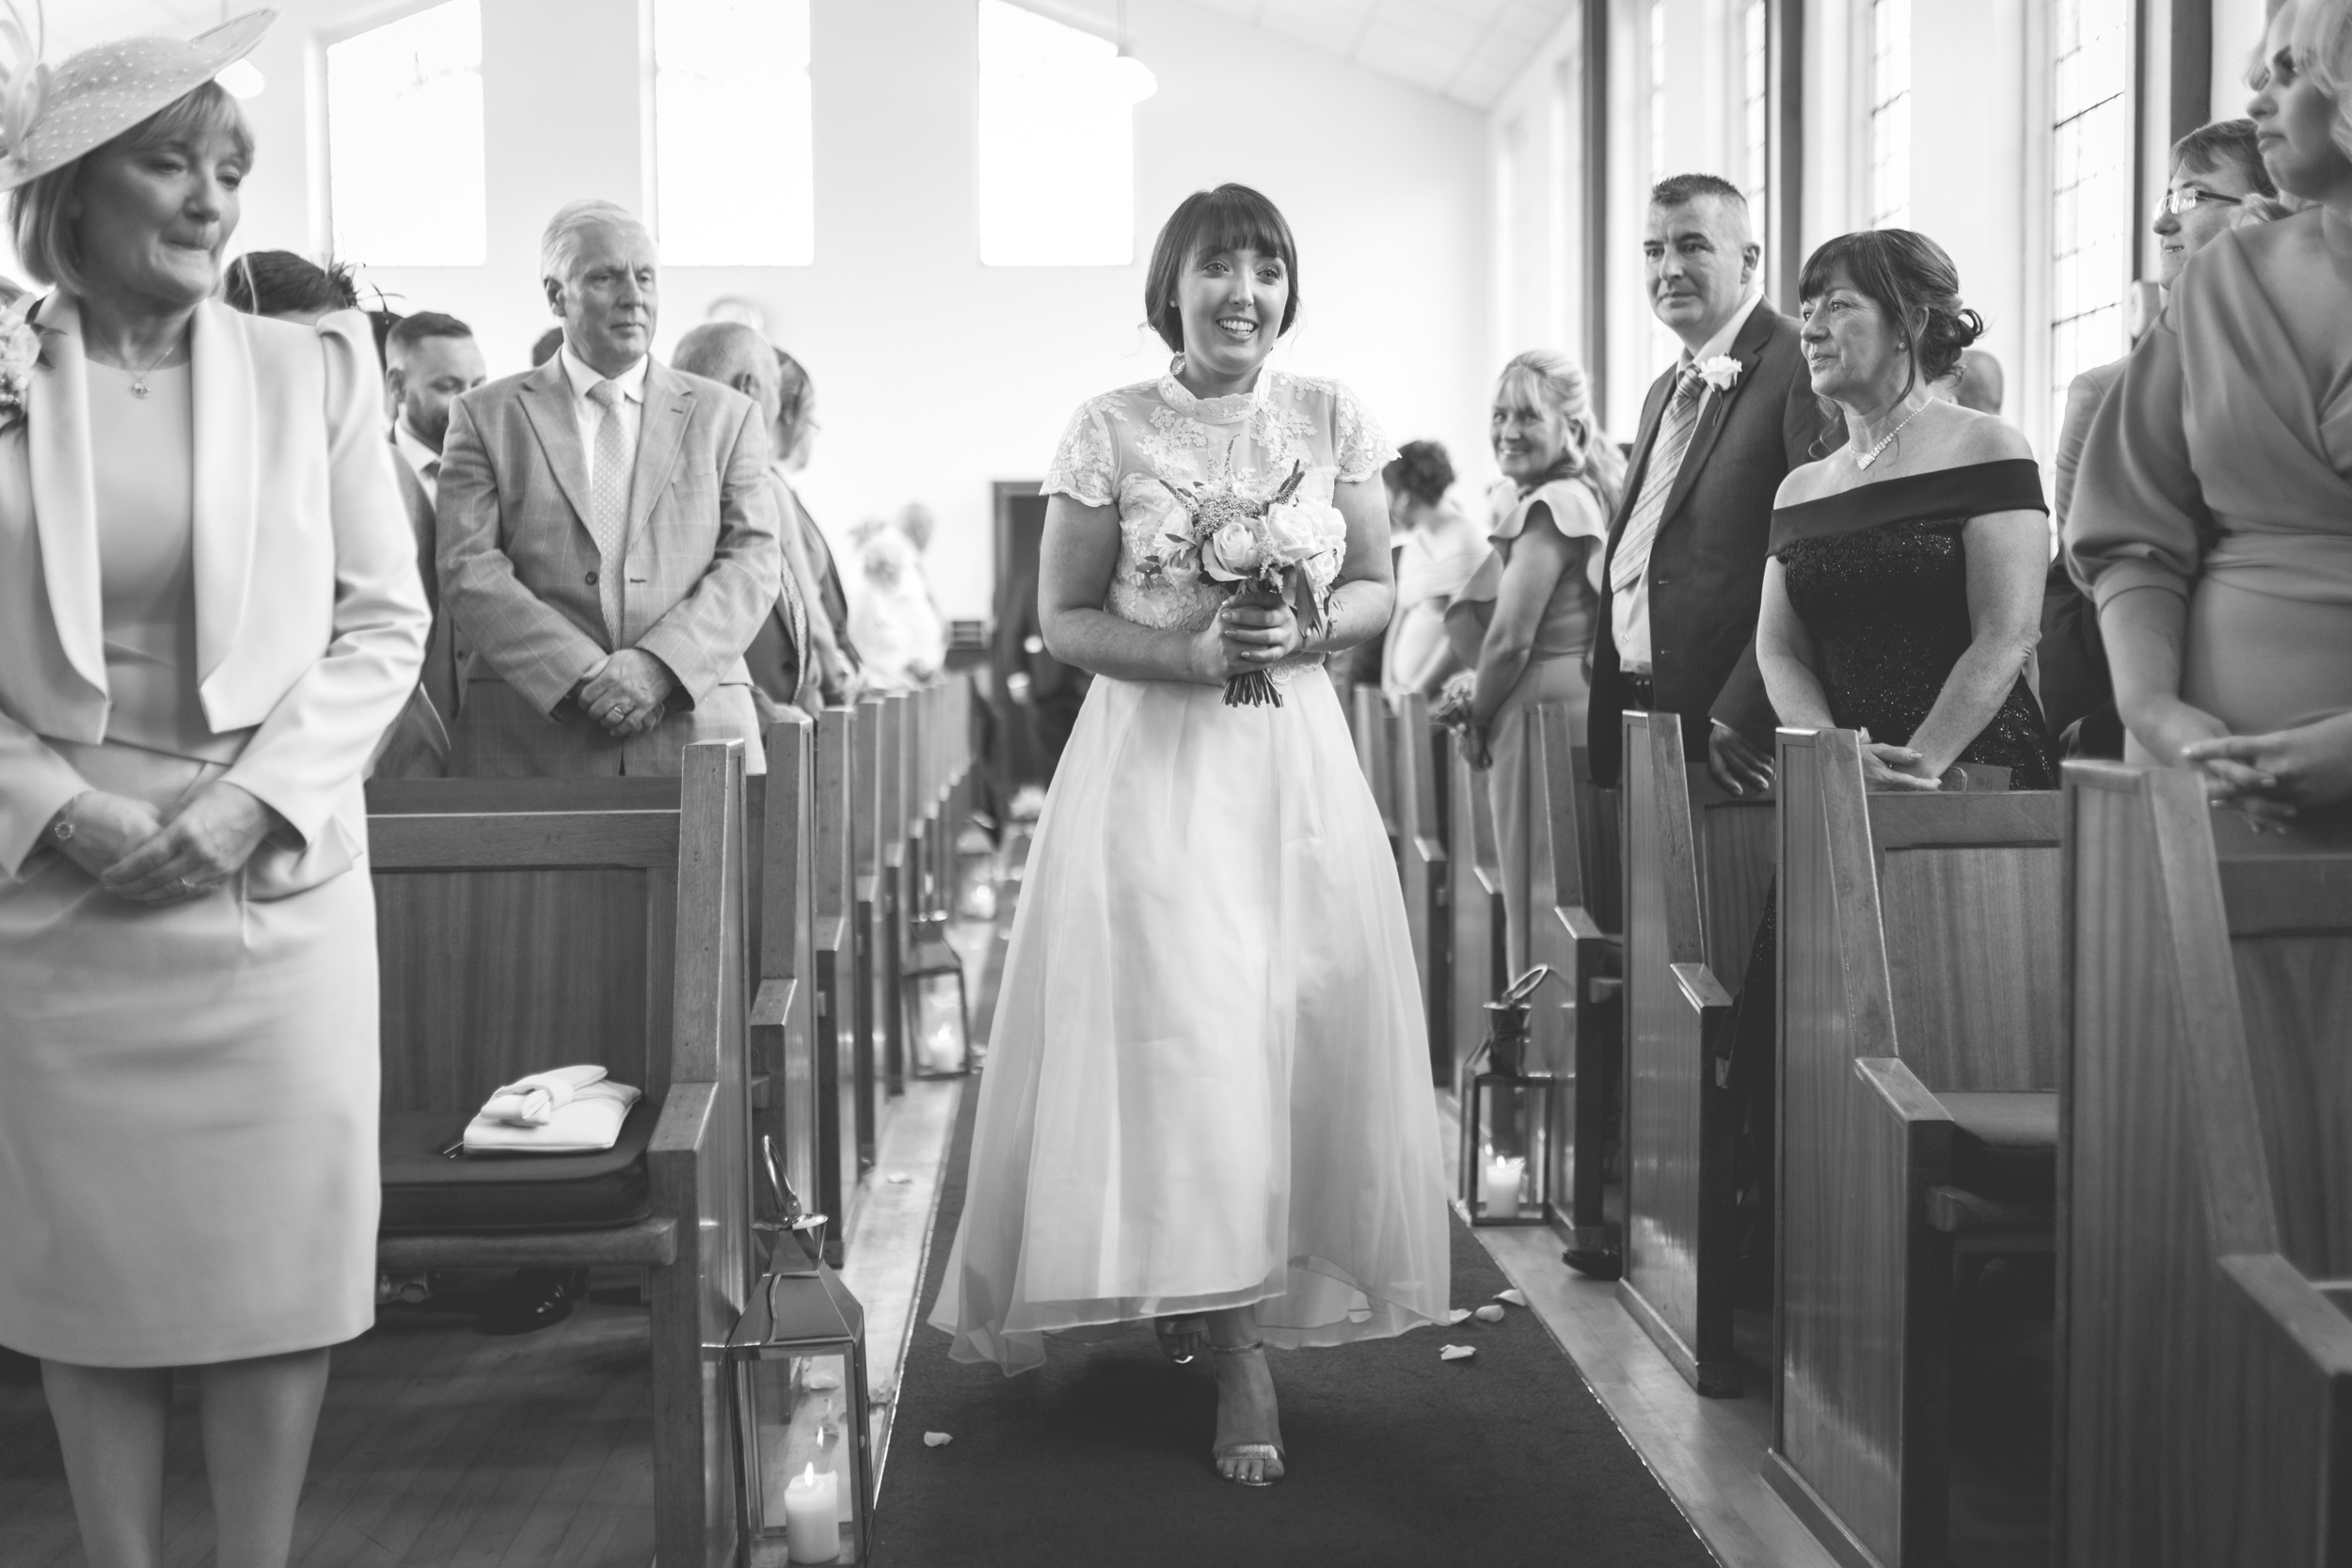 Brian McEwan | Northern Ireland Wedding Photographer | Rebecca & Michael | Ceremony-14.jpg